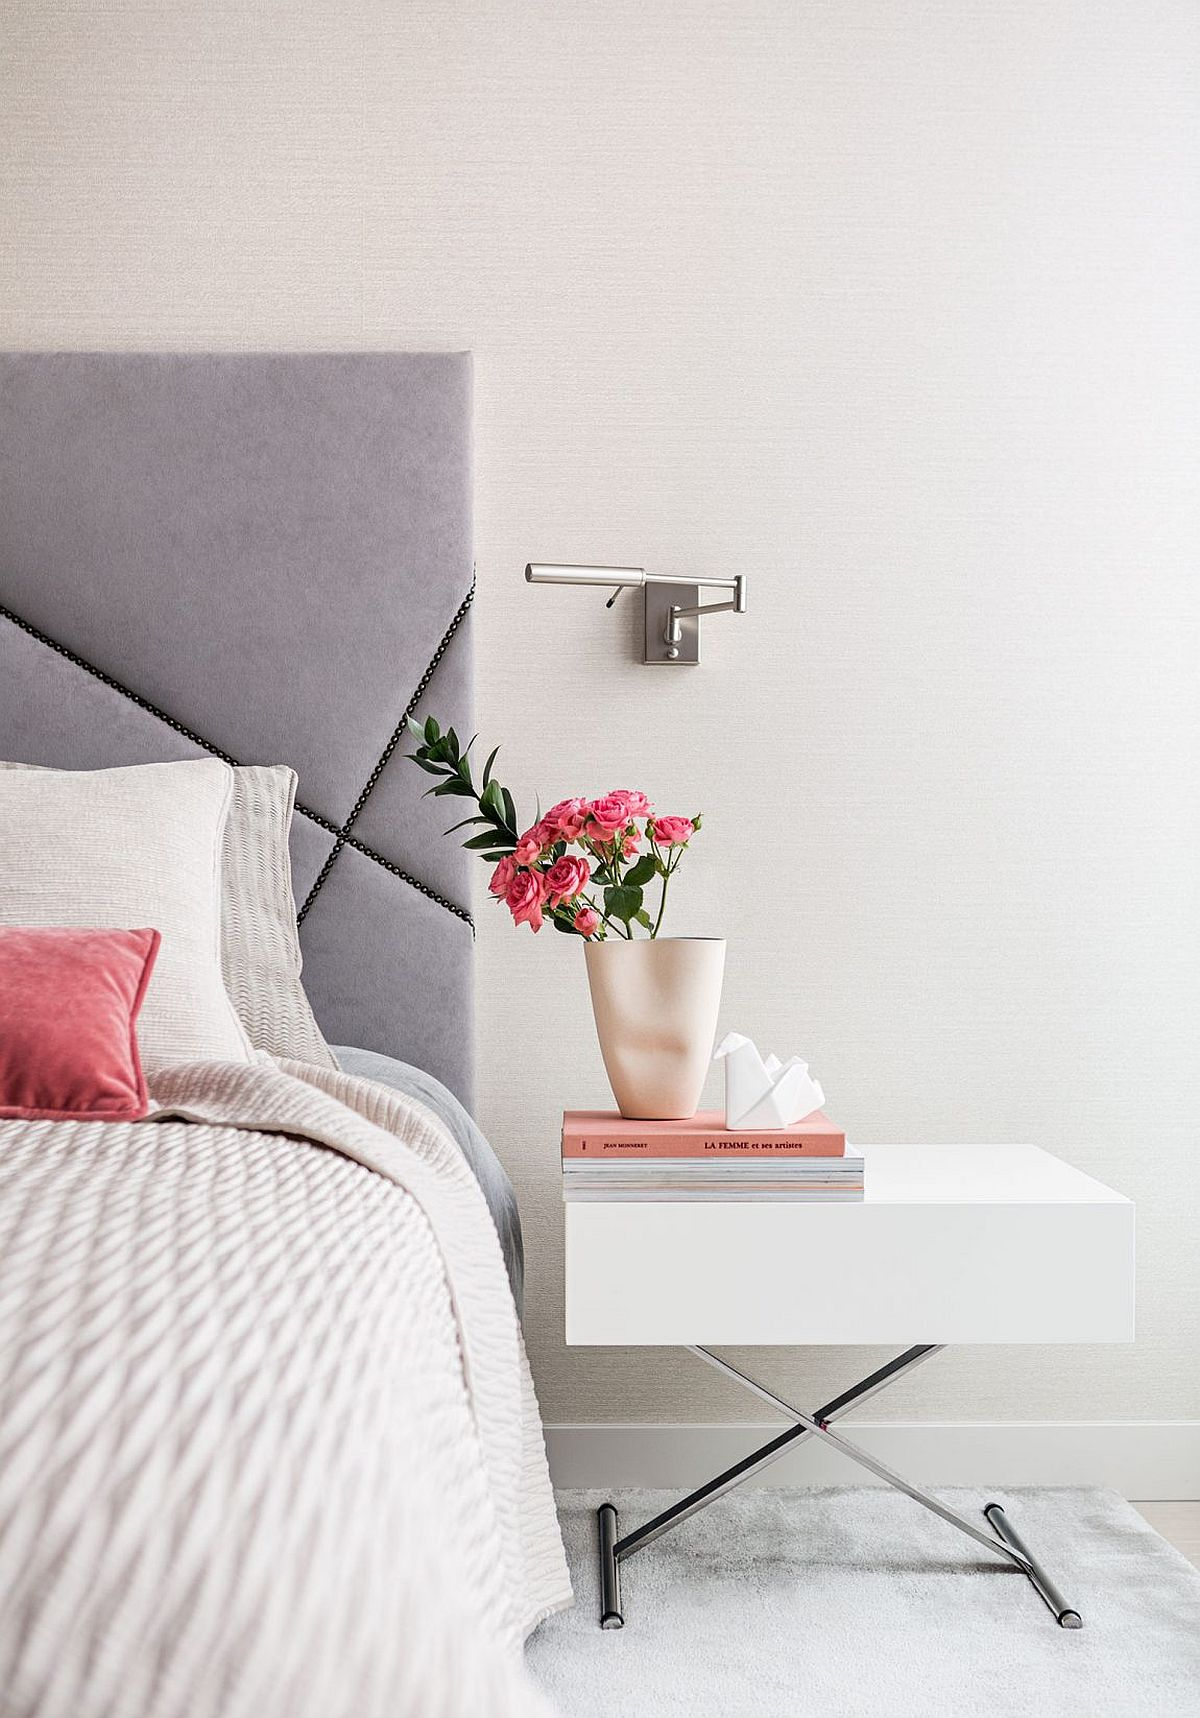 Flower on the nightstand bring a feminine touch to the luxurious bedroom